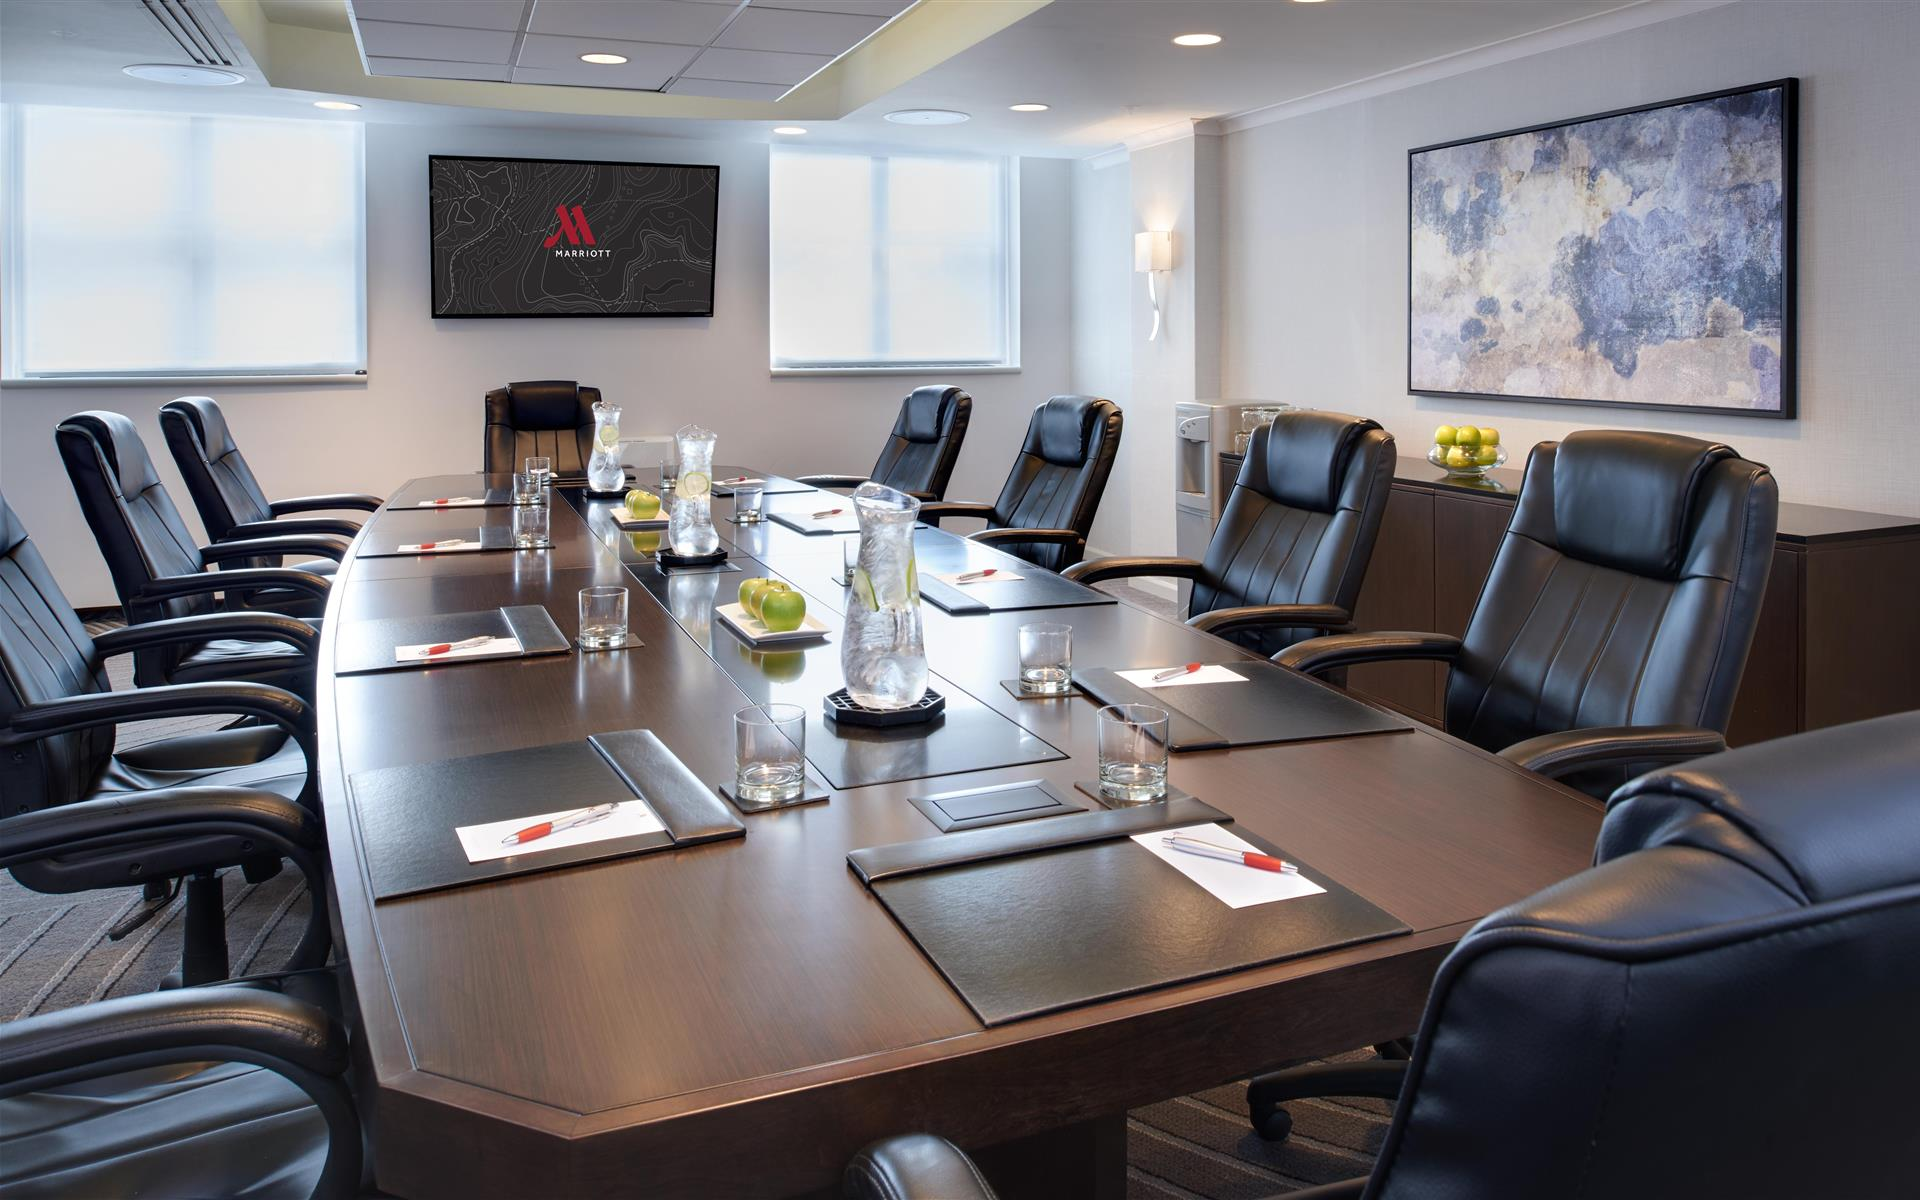 Chicago Marriott Suites O'Hare - Newly Renovated Executive Boardroom